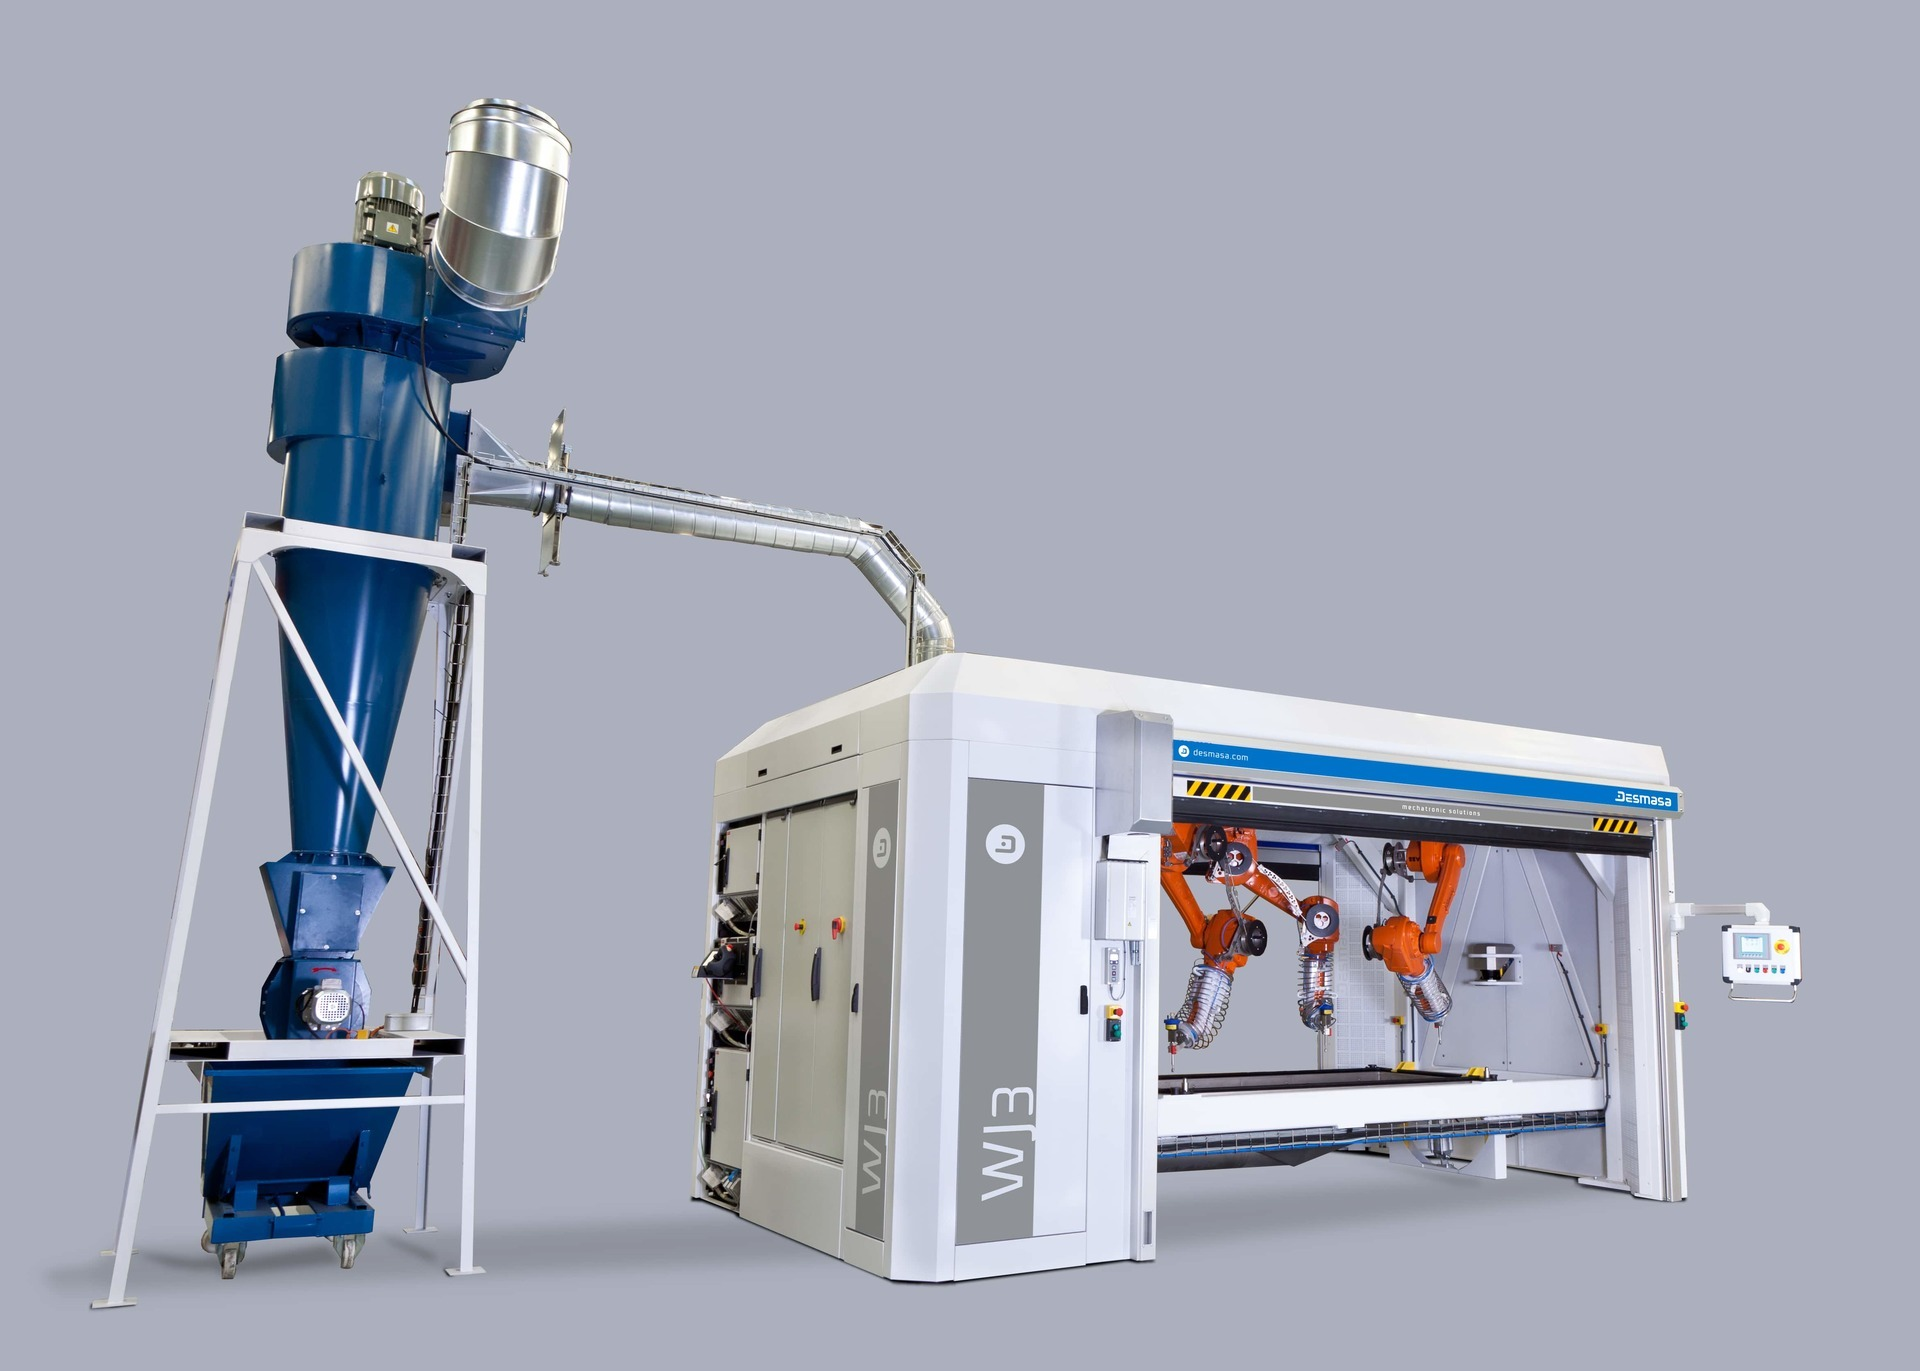 3D robotized waterjet cutting station with intensifier